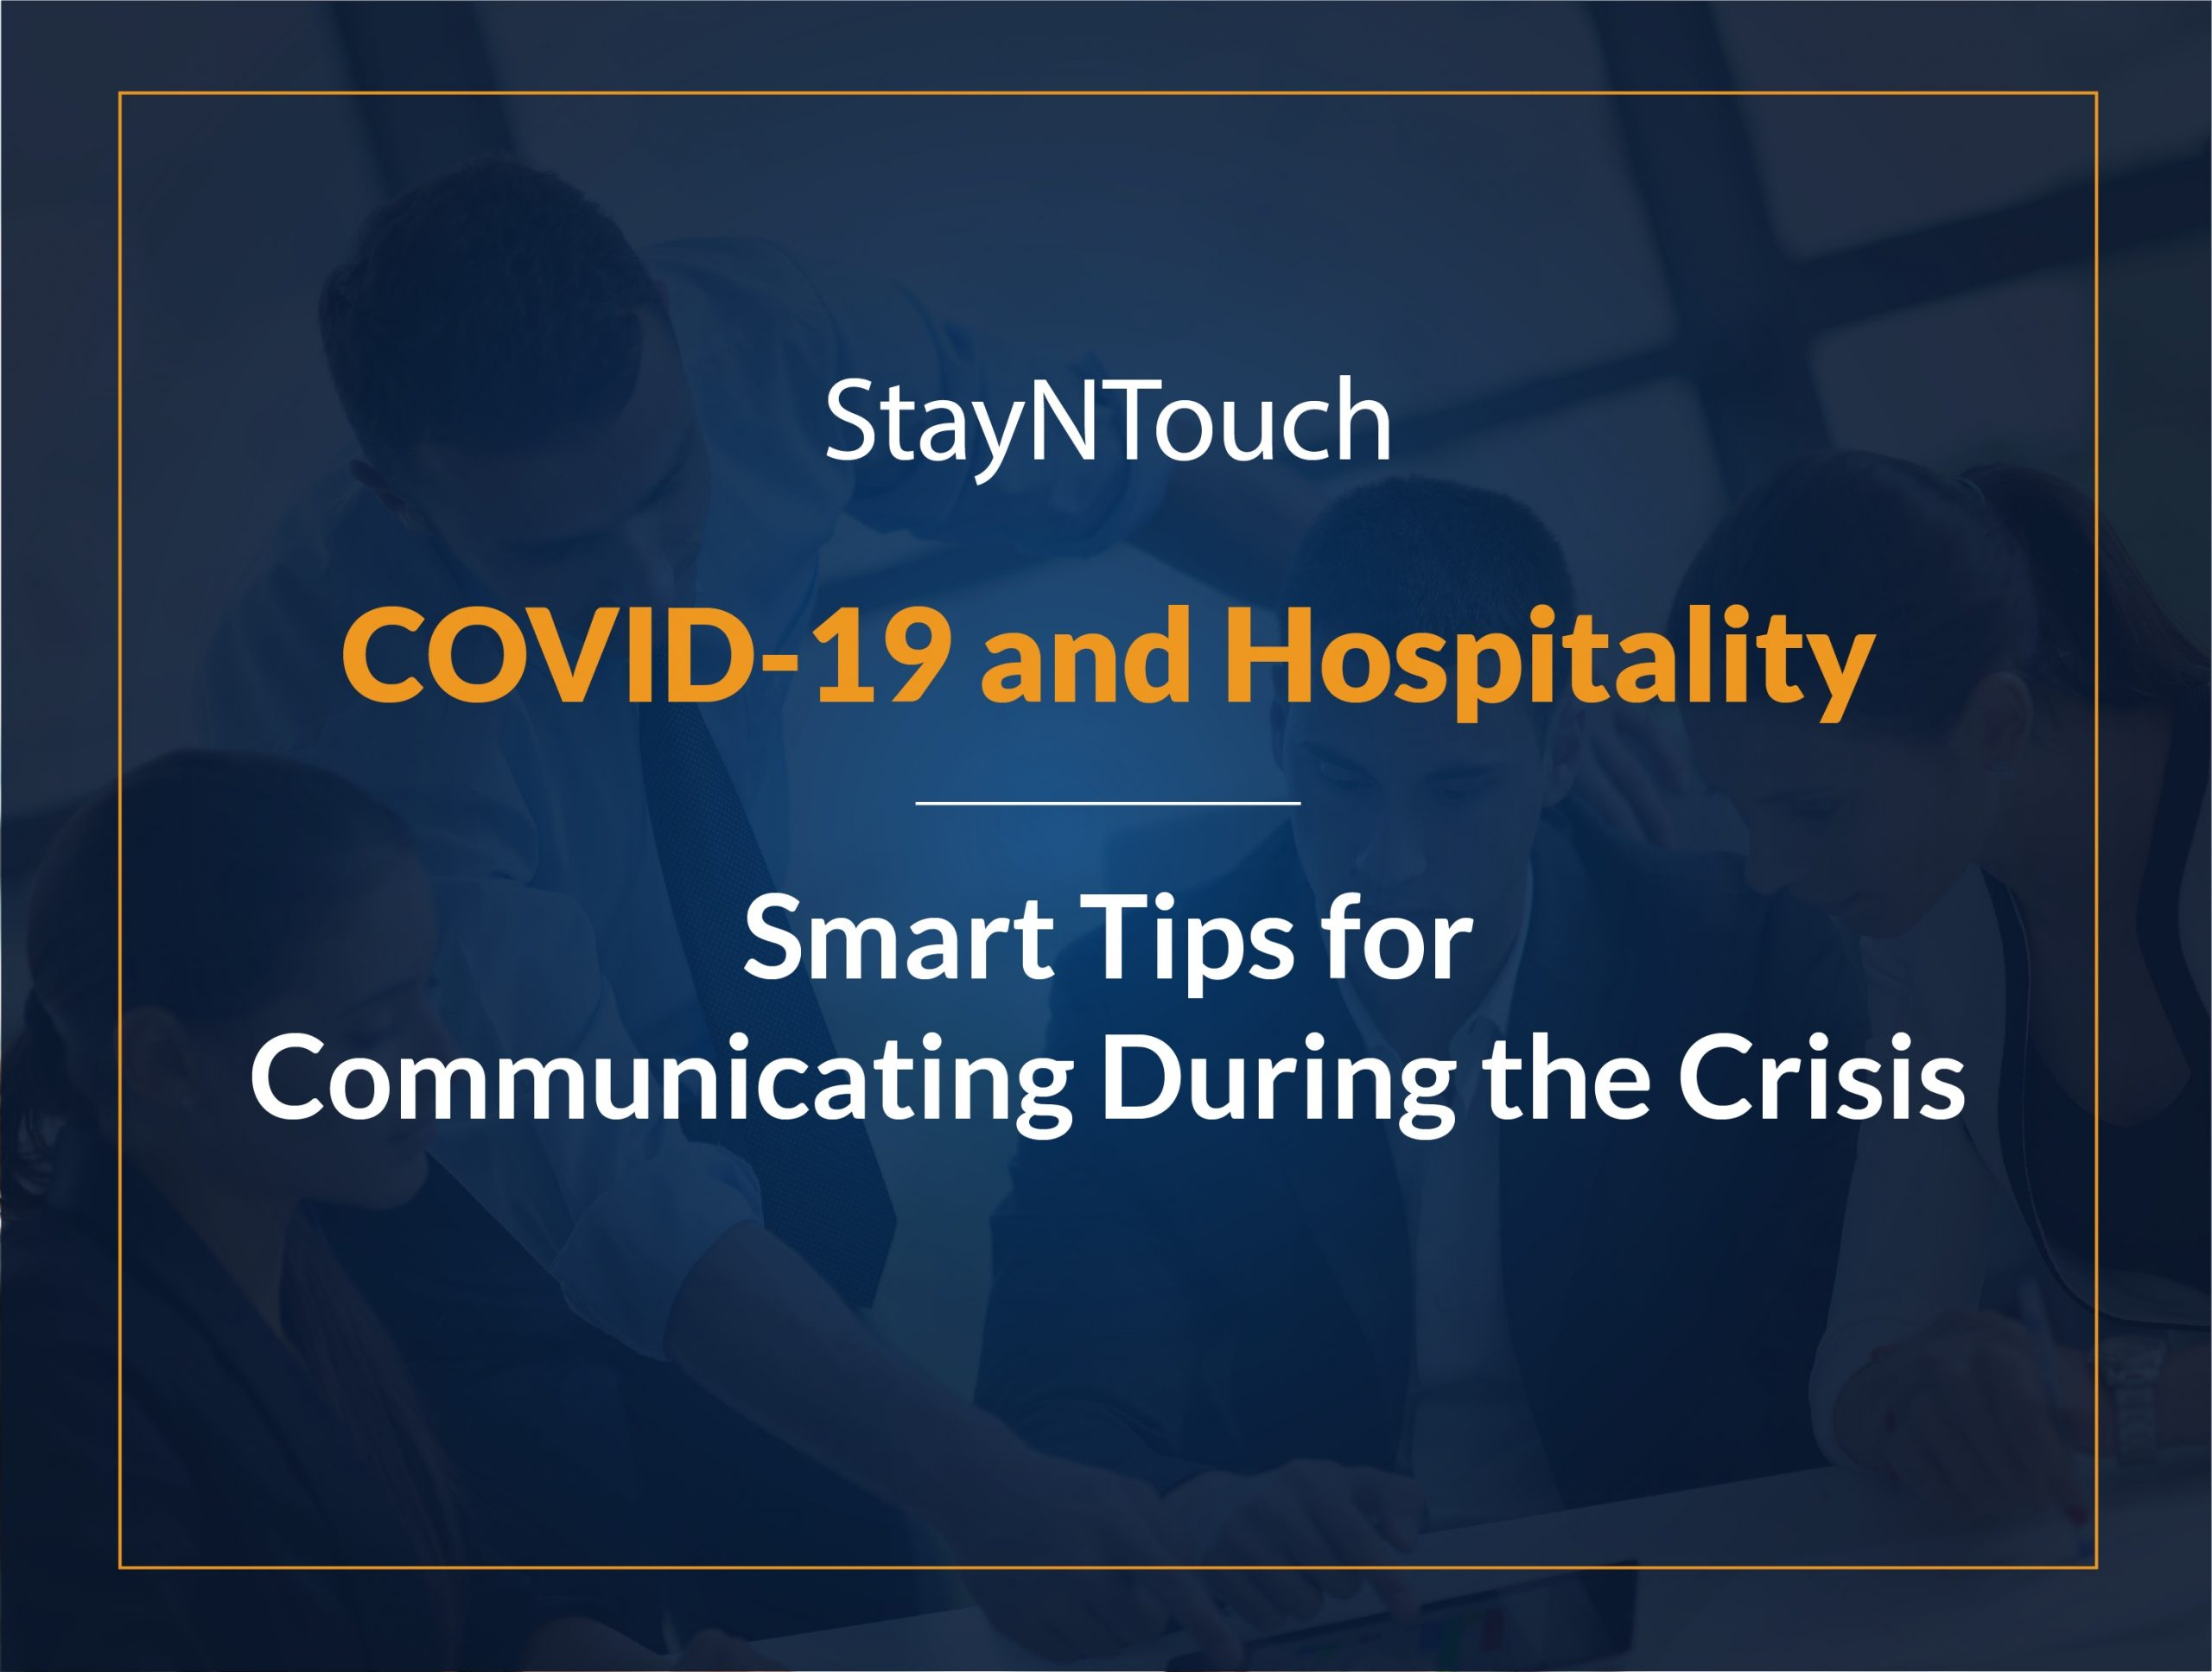 Smart tips for hospitality communication during the COVID-19 Crisis